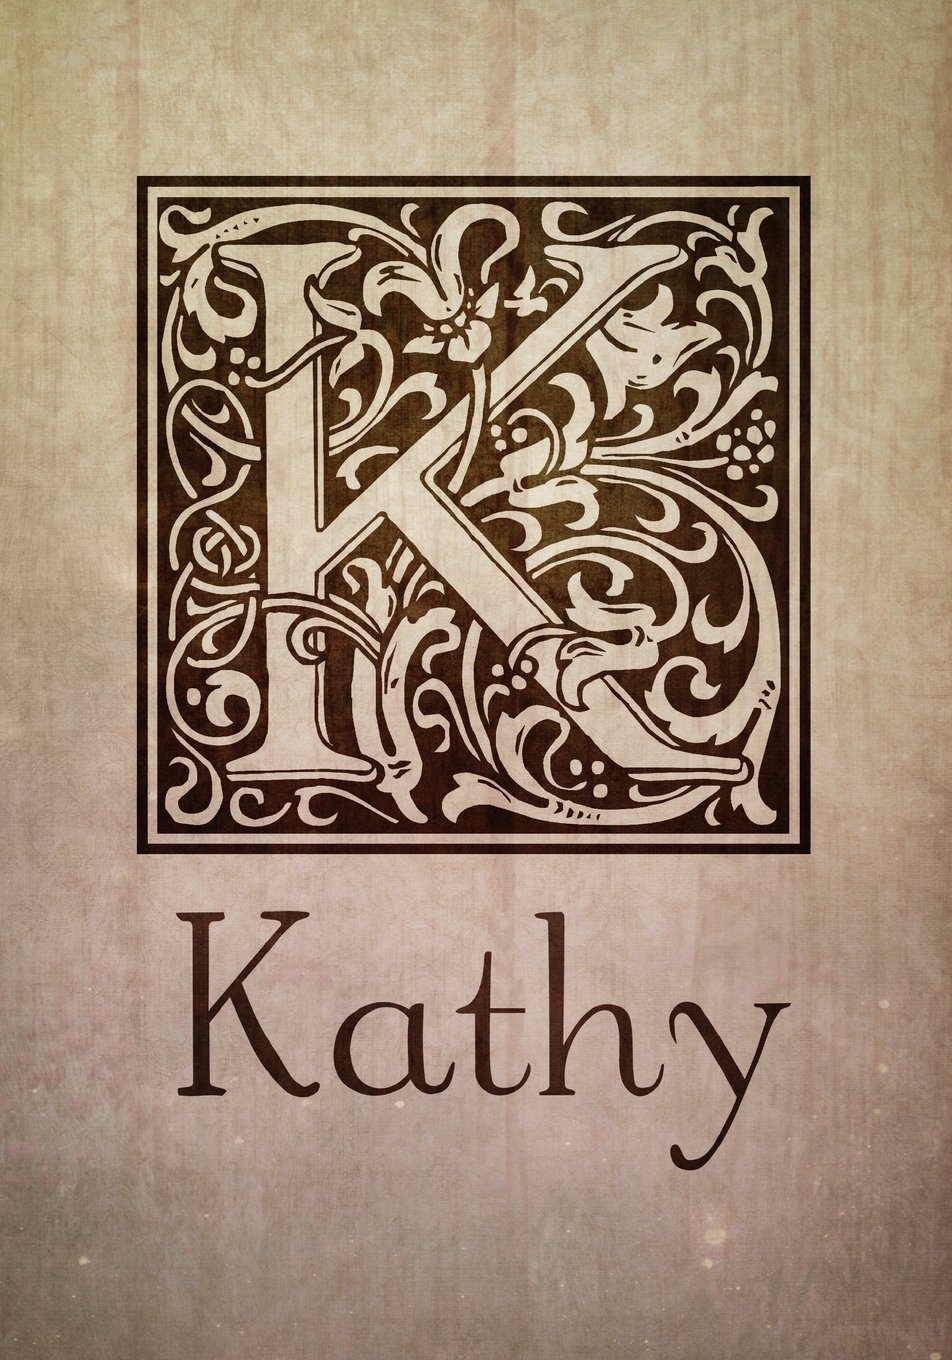 K Kathy Kathy Name Personalized Journal Notebook Vintage William Morris Arts And Crafts Calligraphy Lettering Typography Style Monogrammed Journal Notebook Letter K Personalized Journals For Her Journals Mad Hatter 9781720723202 Amazon Com Books